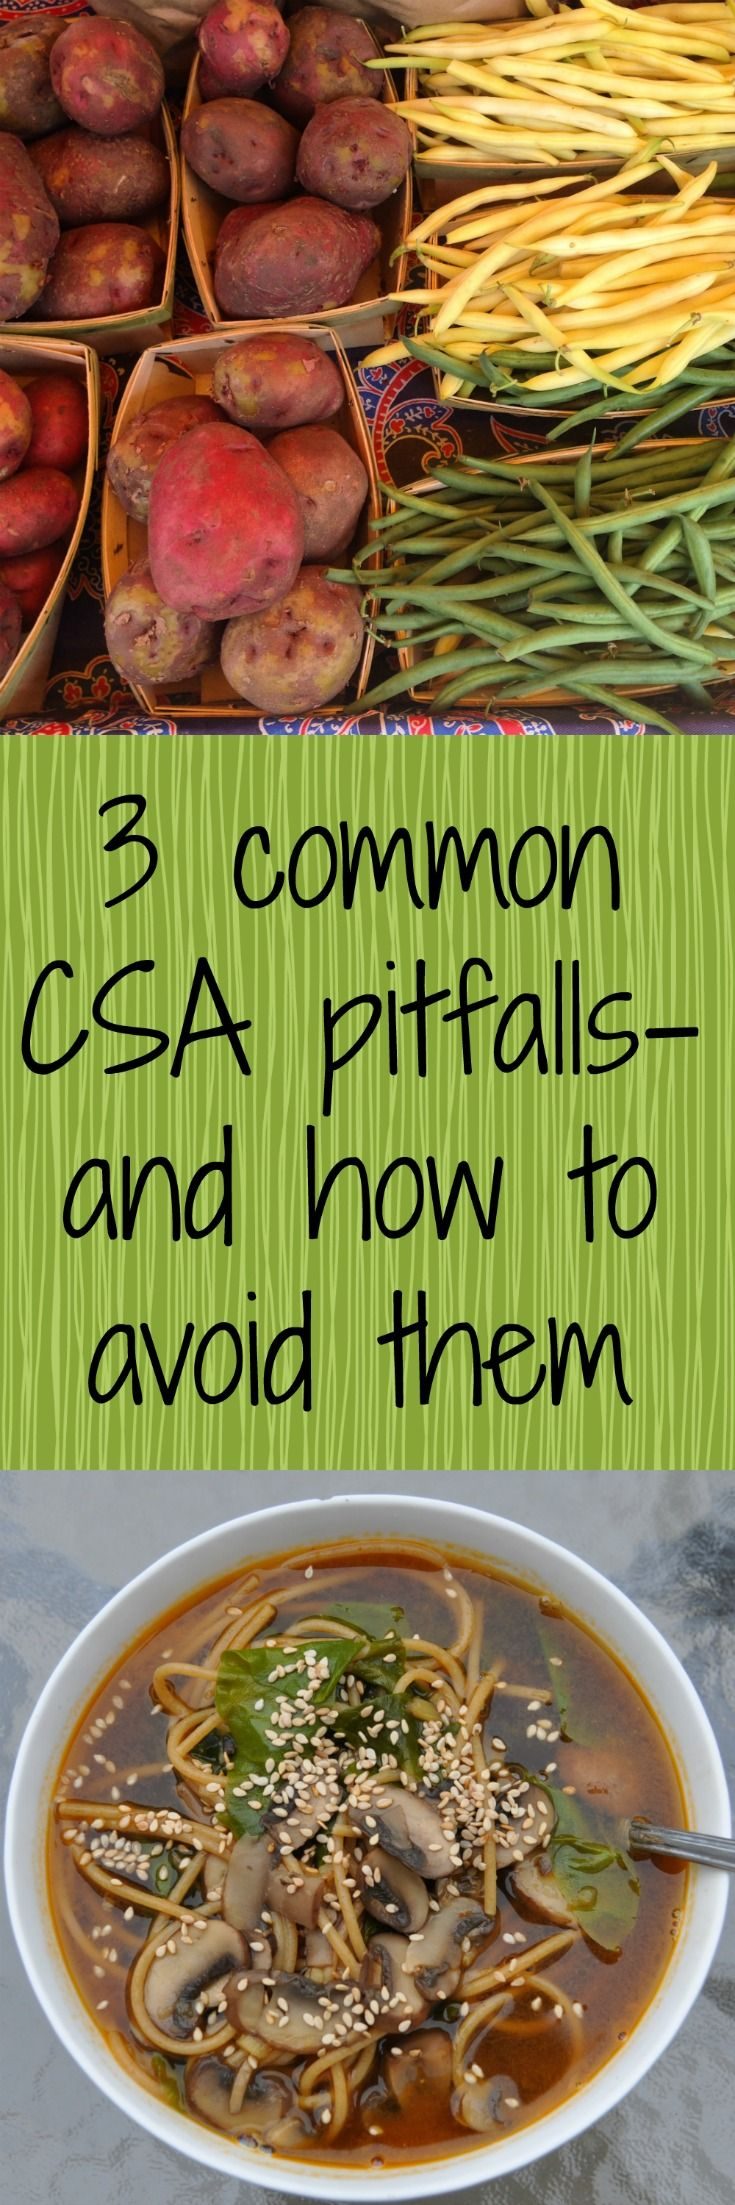 3 Common CSA Pitfalls-and How to Avoid Them